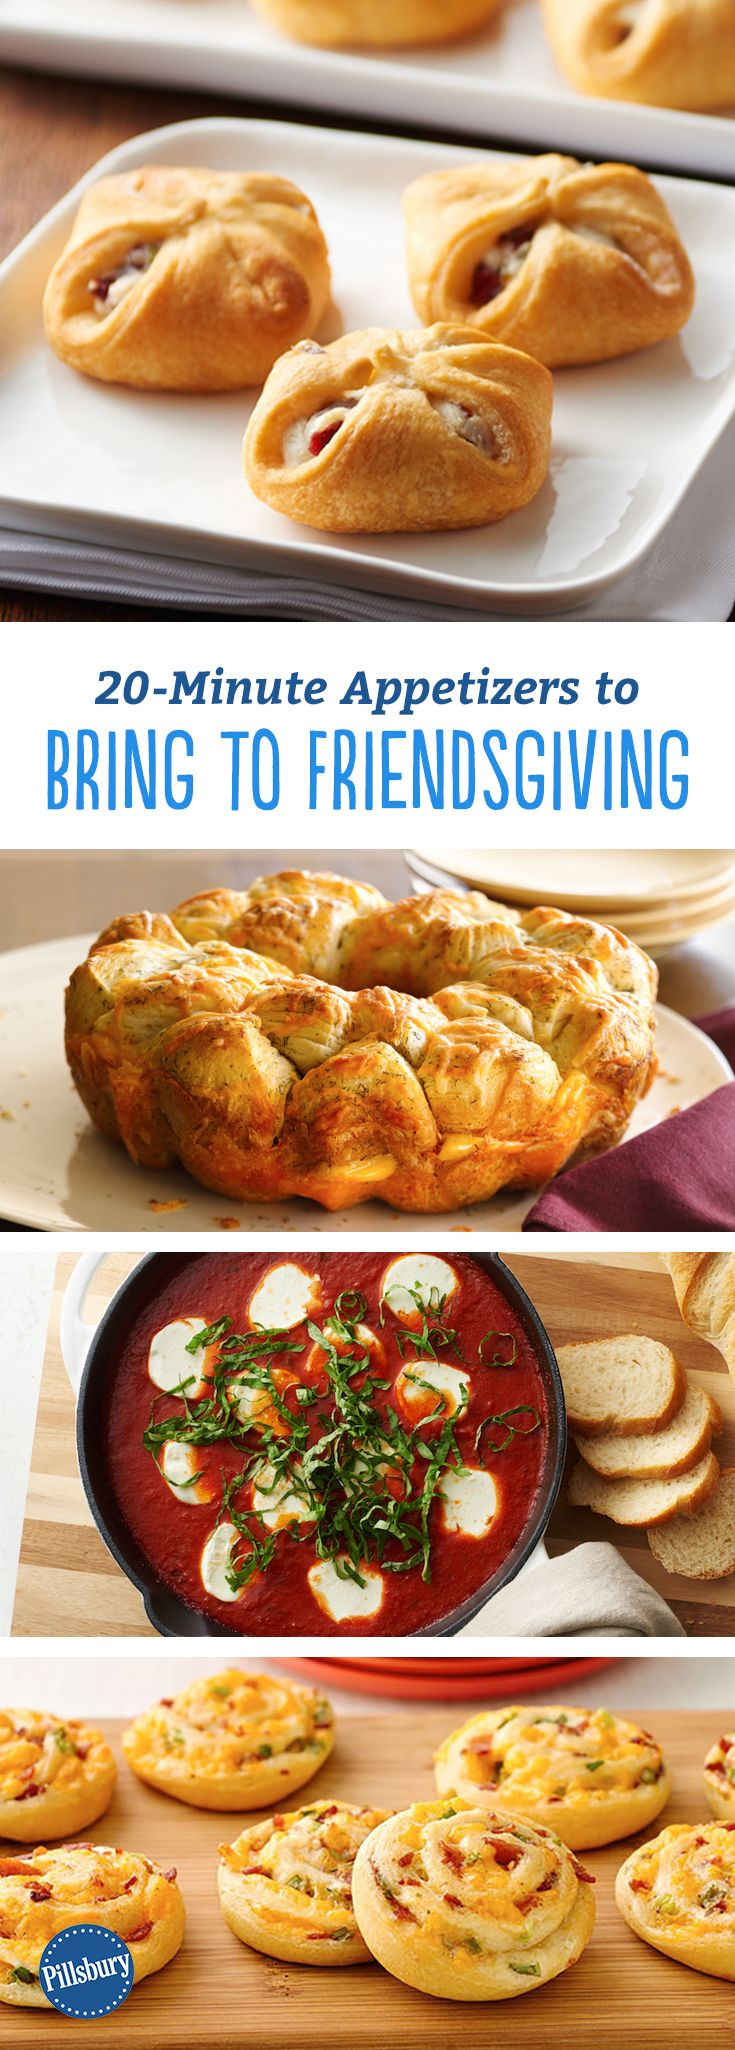 Appetizers For Thanksgiving Dinner  20 Minute Appetizers to Bring to Friendsgiving